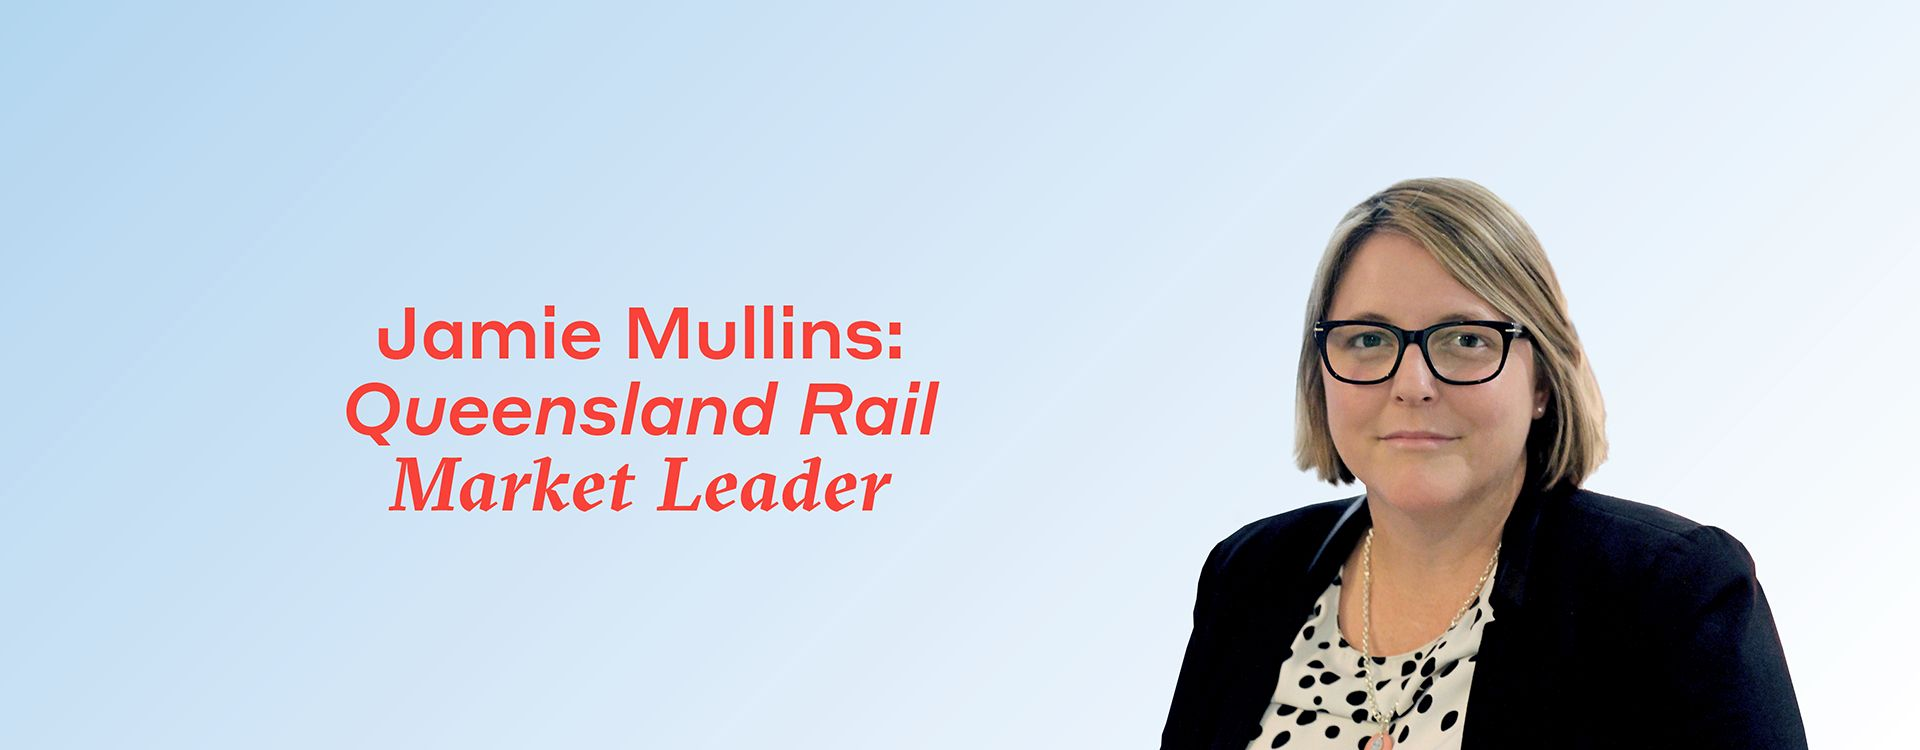 Jamie Mullins is helping WSP to strengthen our rail team to benefit modern, sustainable communities